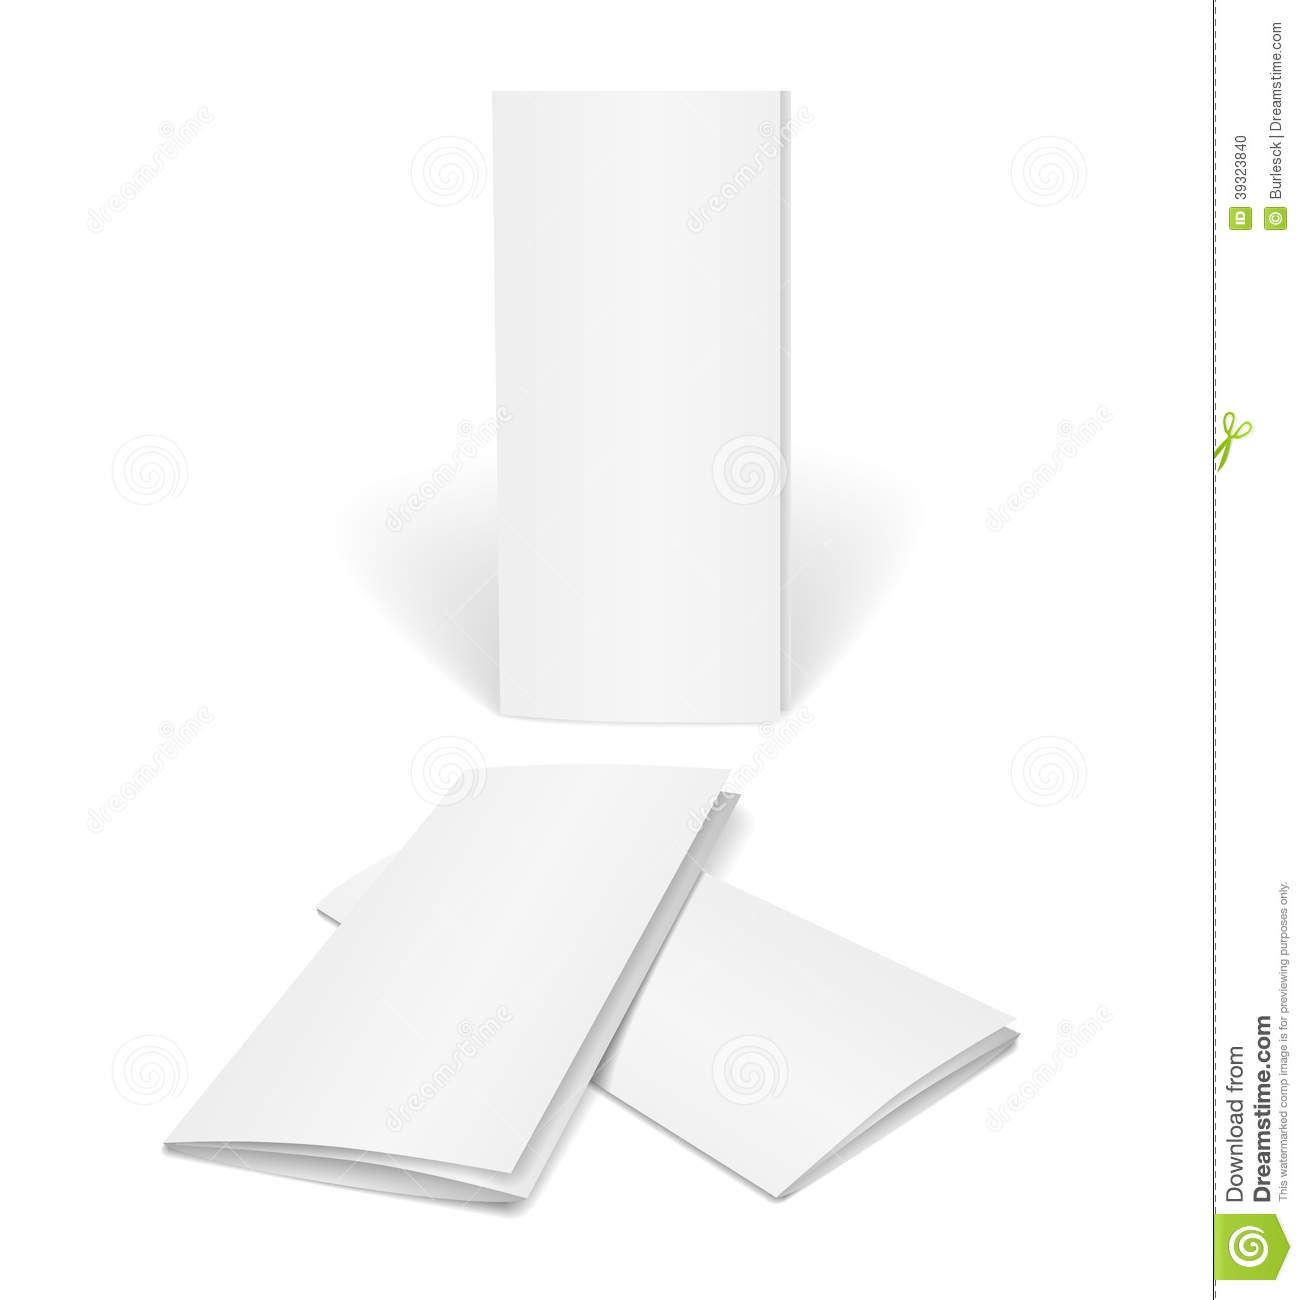 Blank Vector Brochure Template Stock Vector Illustration Of - Blank brochure templates